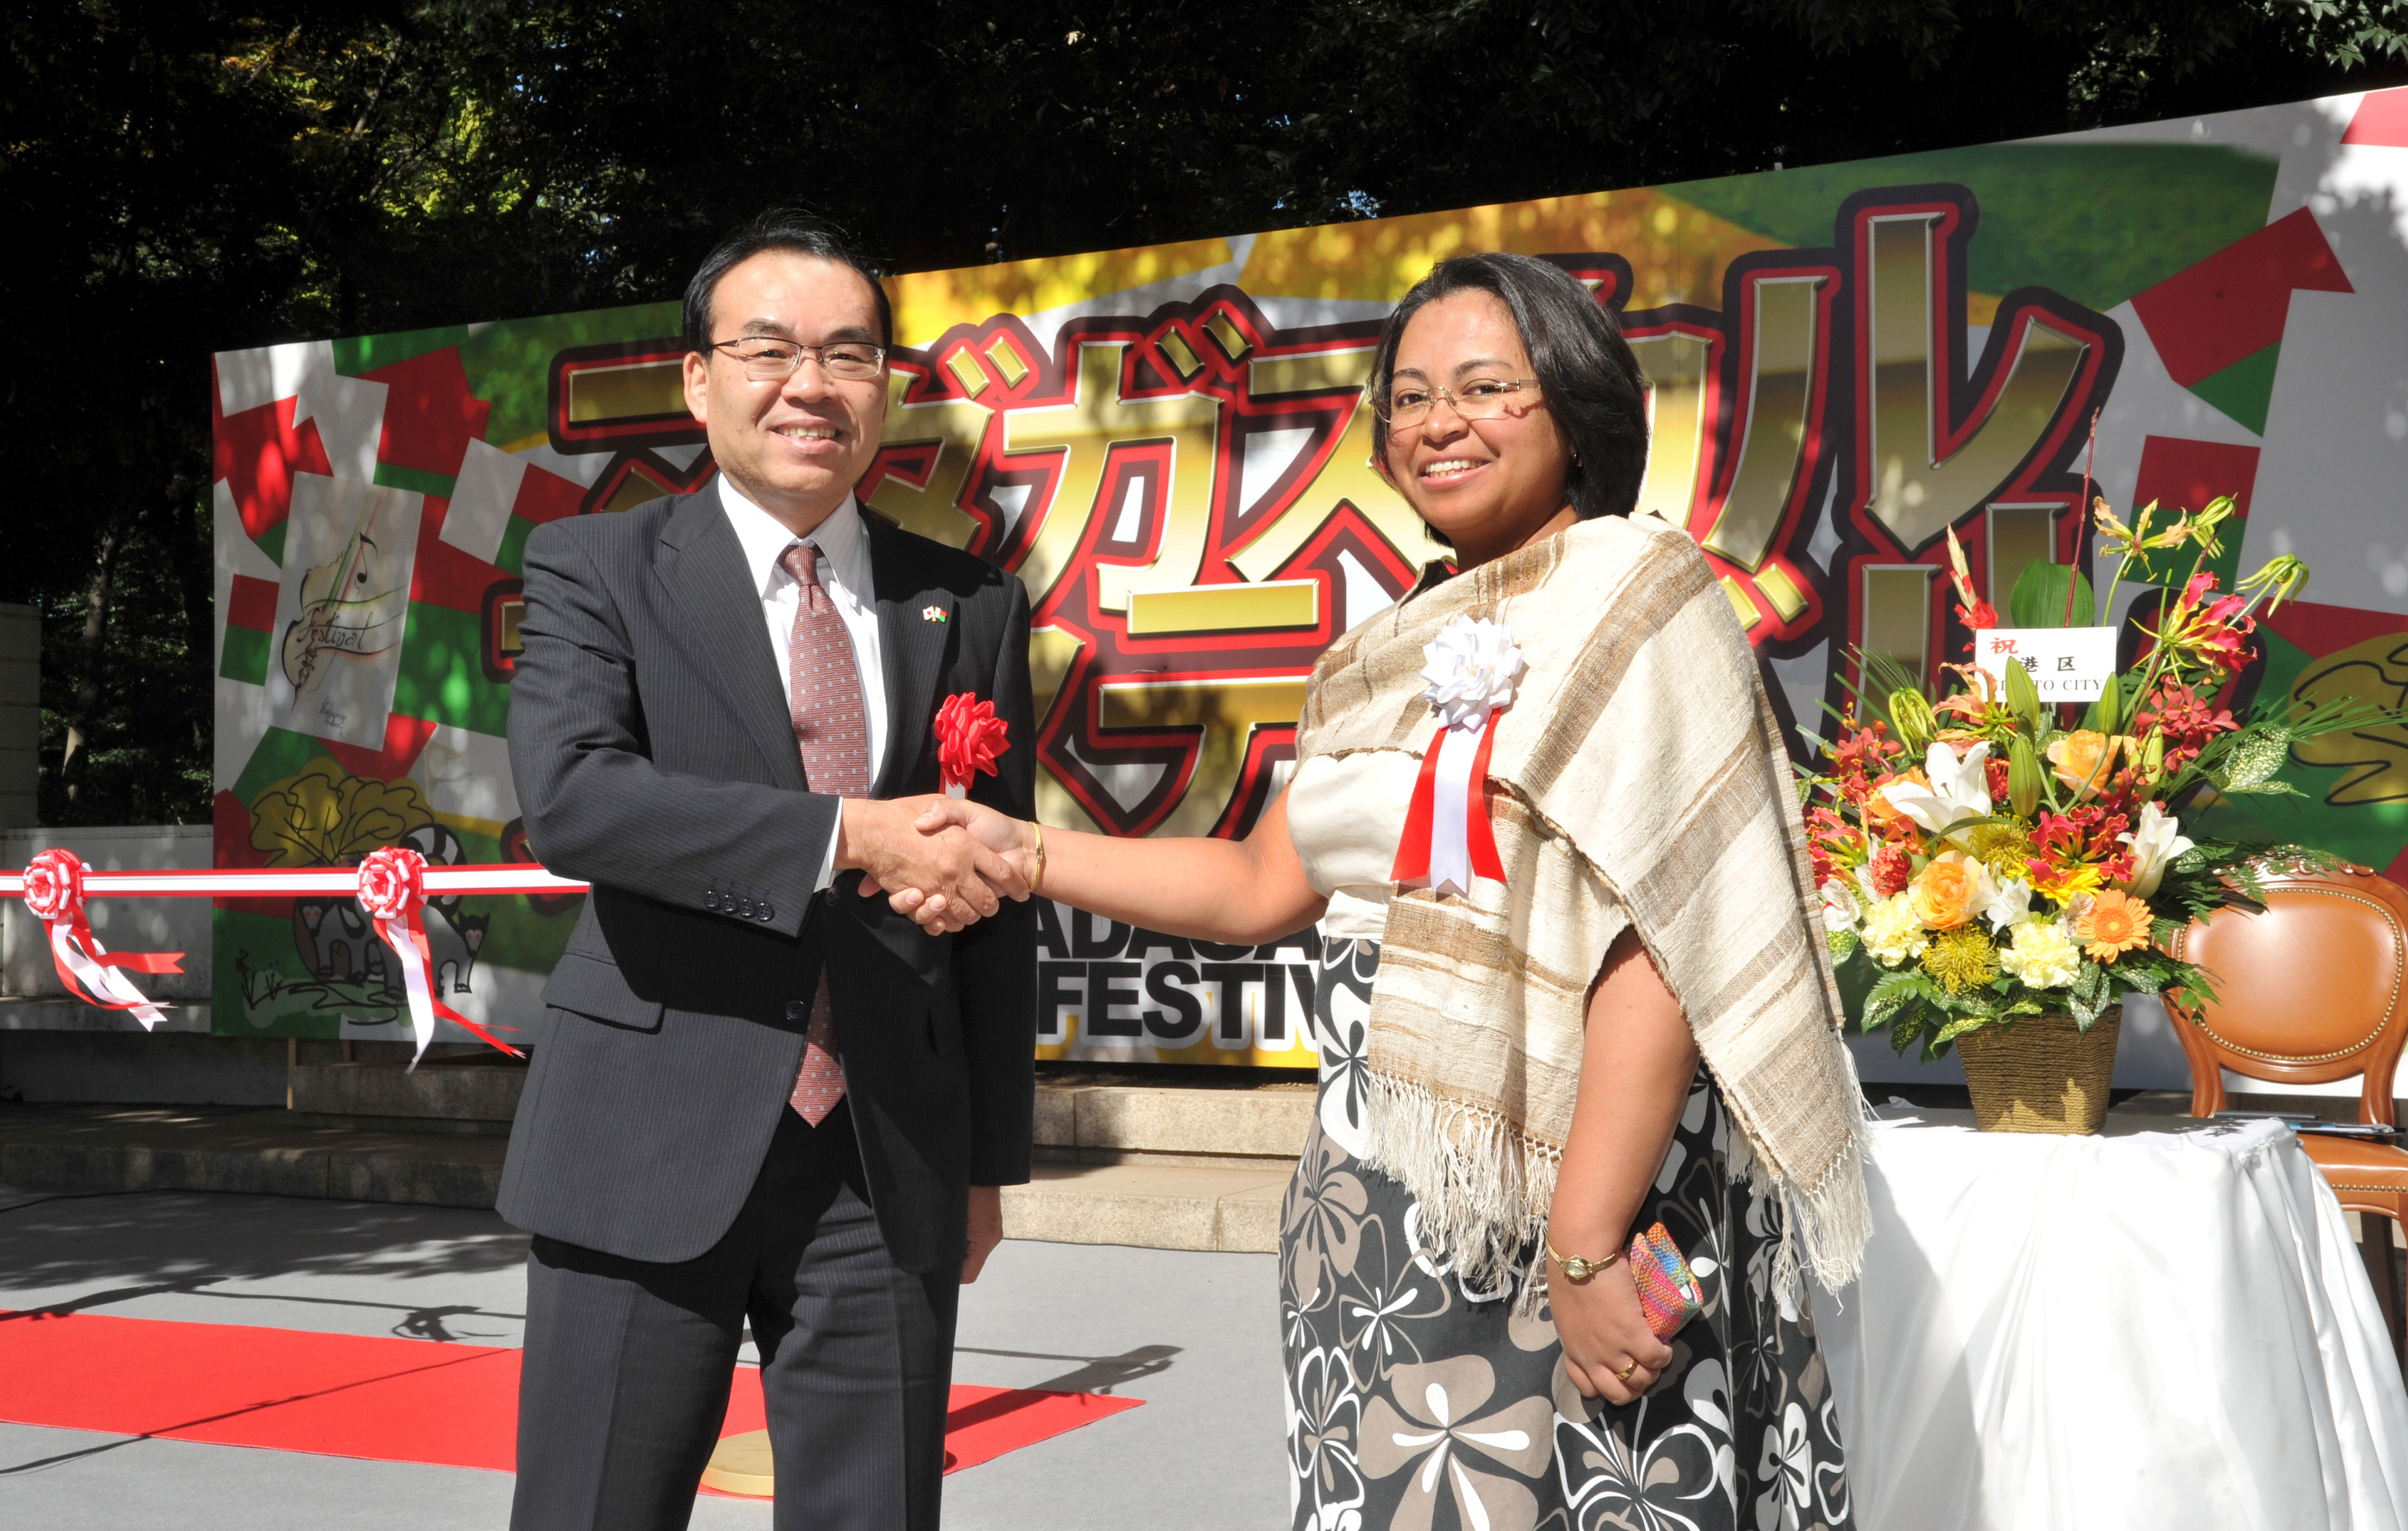 Charge d'Affairs a.i. of Madagascar Rosette Rasoamanarivo (right), shakes hands with Akira Oyaizu, deputy mayor of Minato Ward, Tokyo, during the opening ceremony of the 2015 Madagascar Festival at Arisugawa Memorial Park in Tokyo on Oct. 25. | YOSHIAKI MIURA